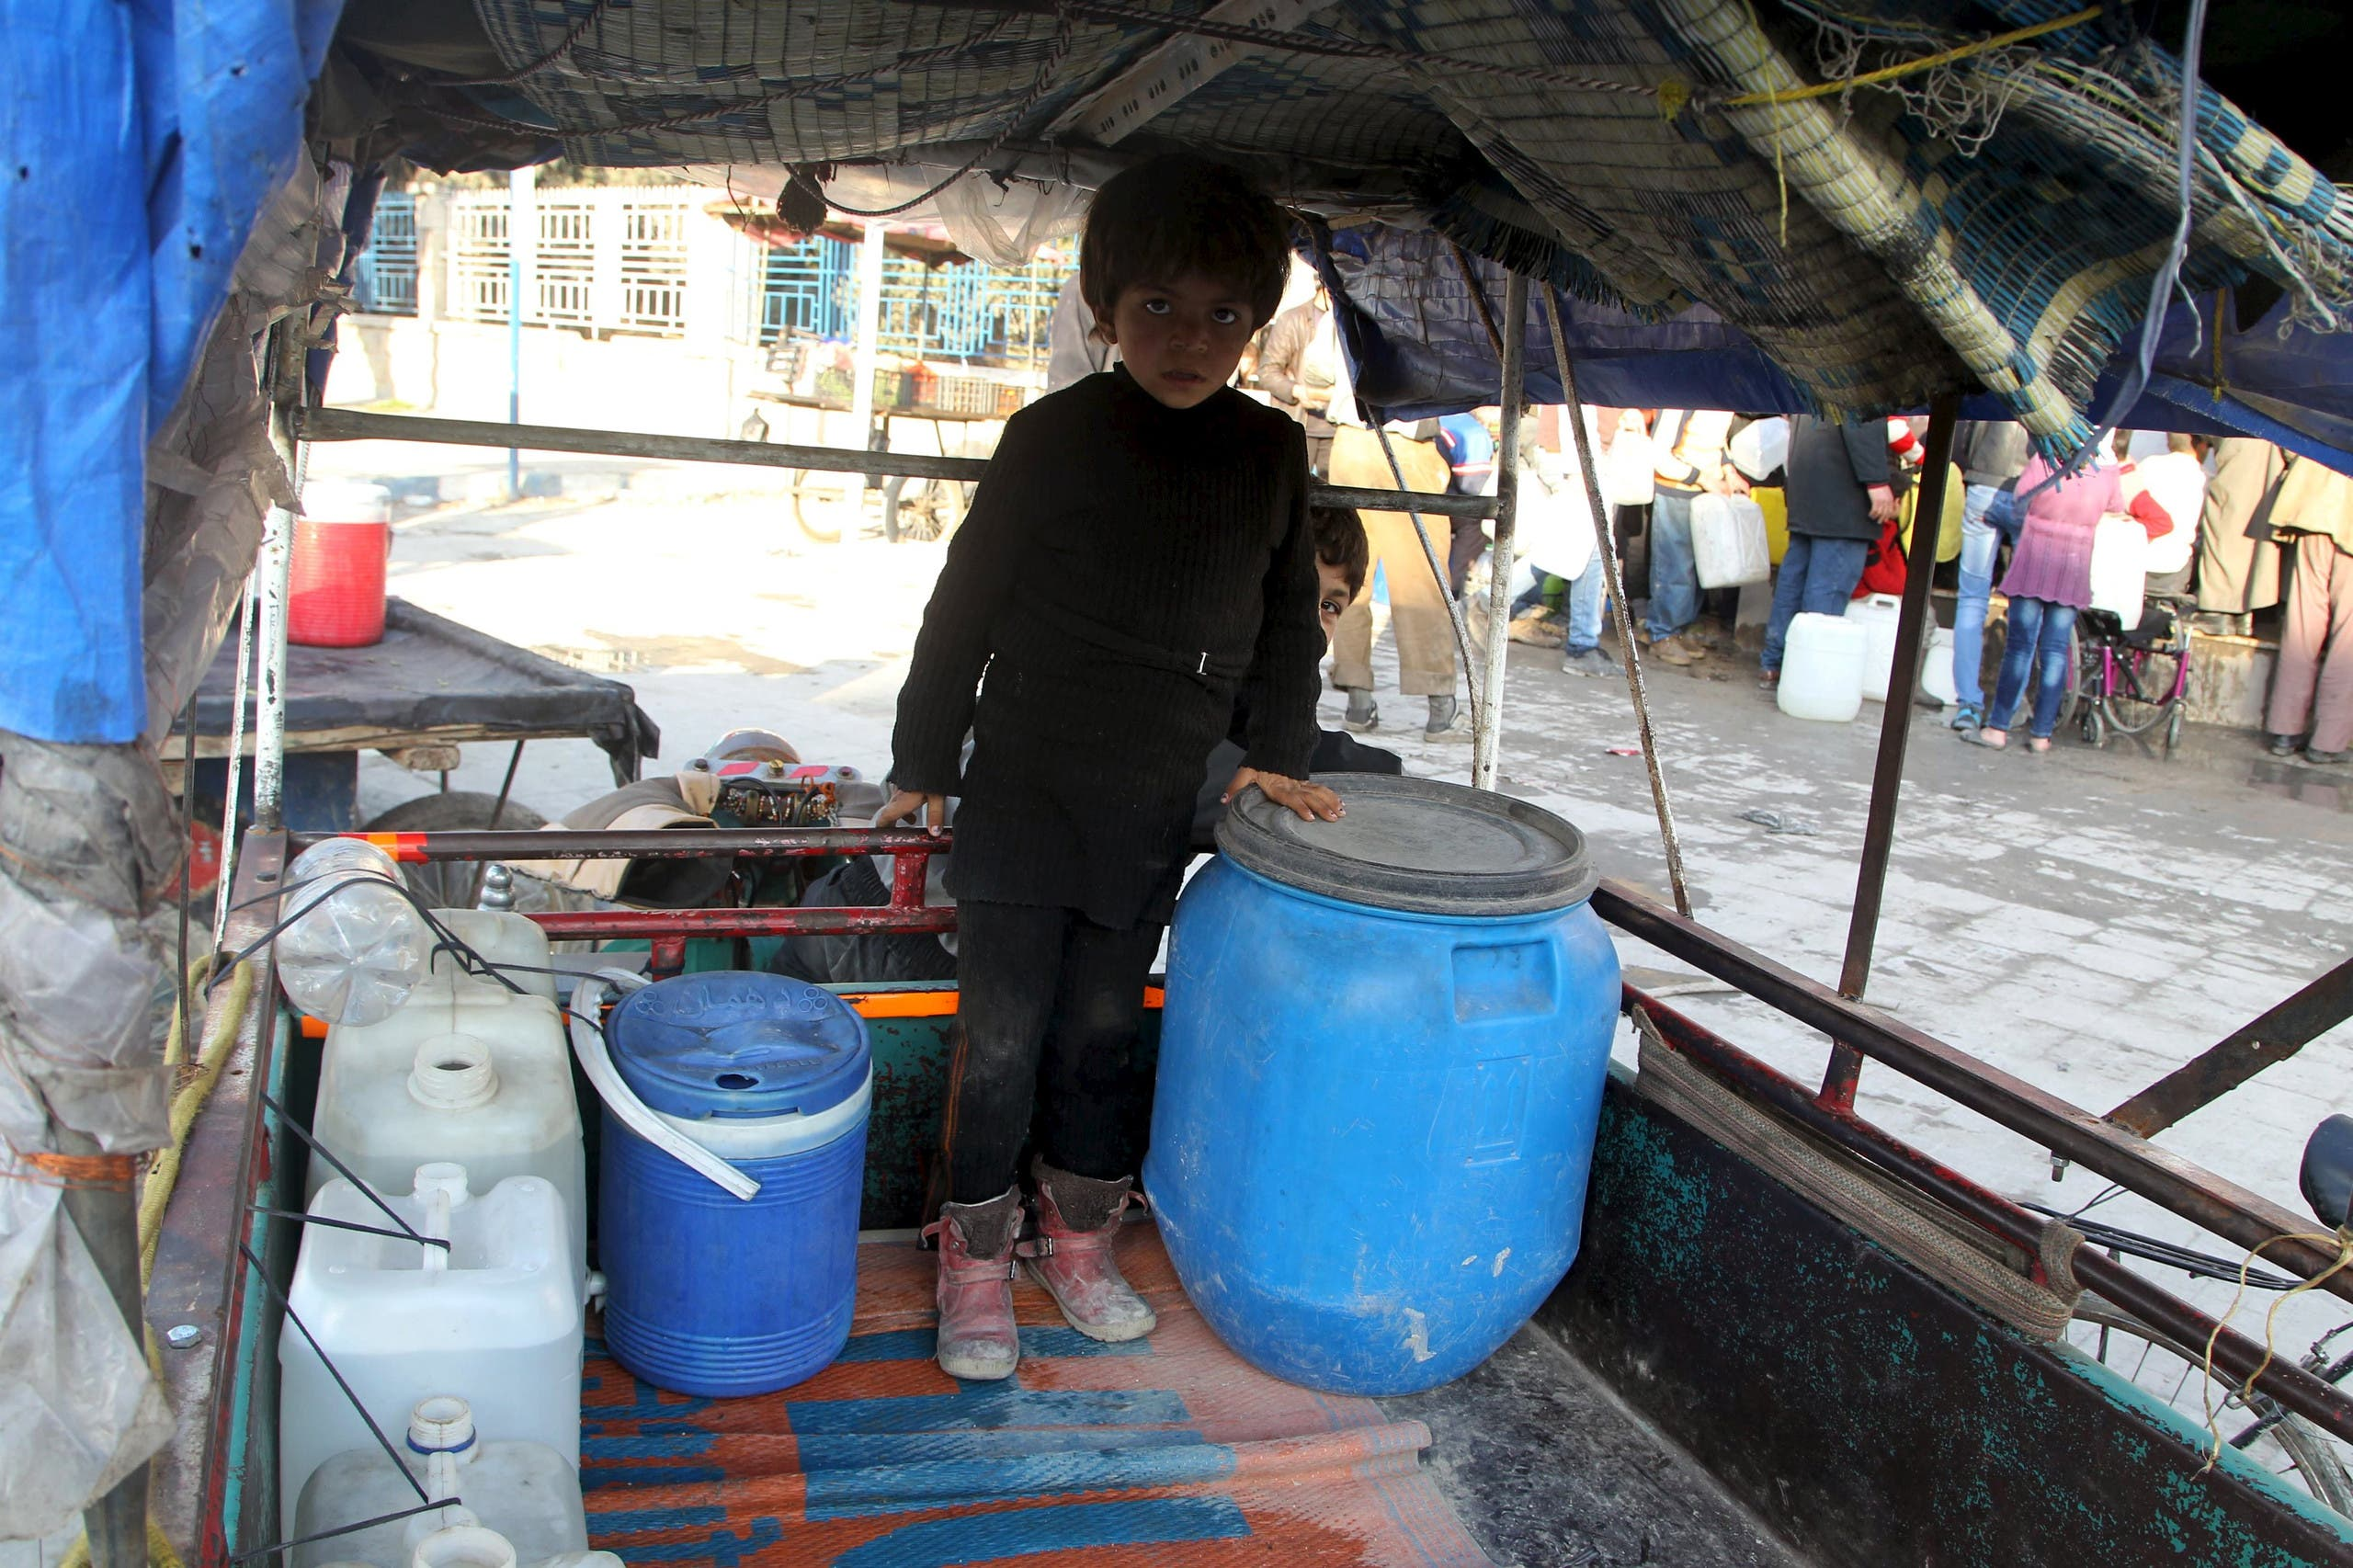 A smile is rare for children of war-torn Syria